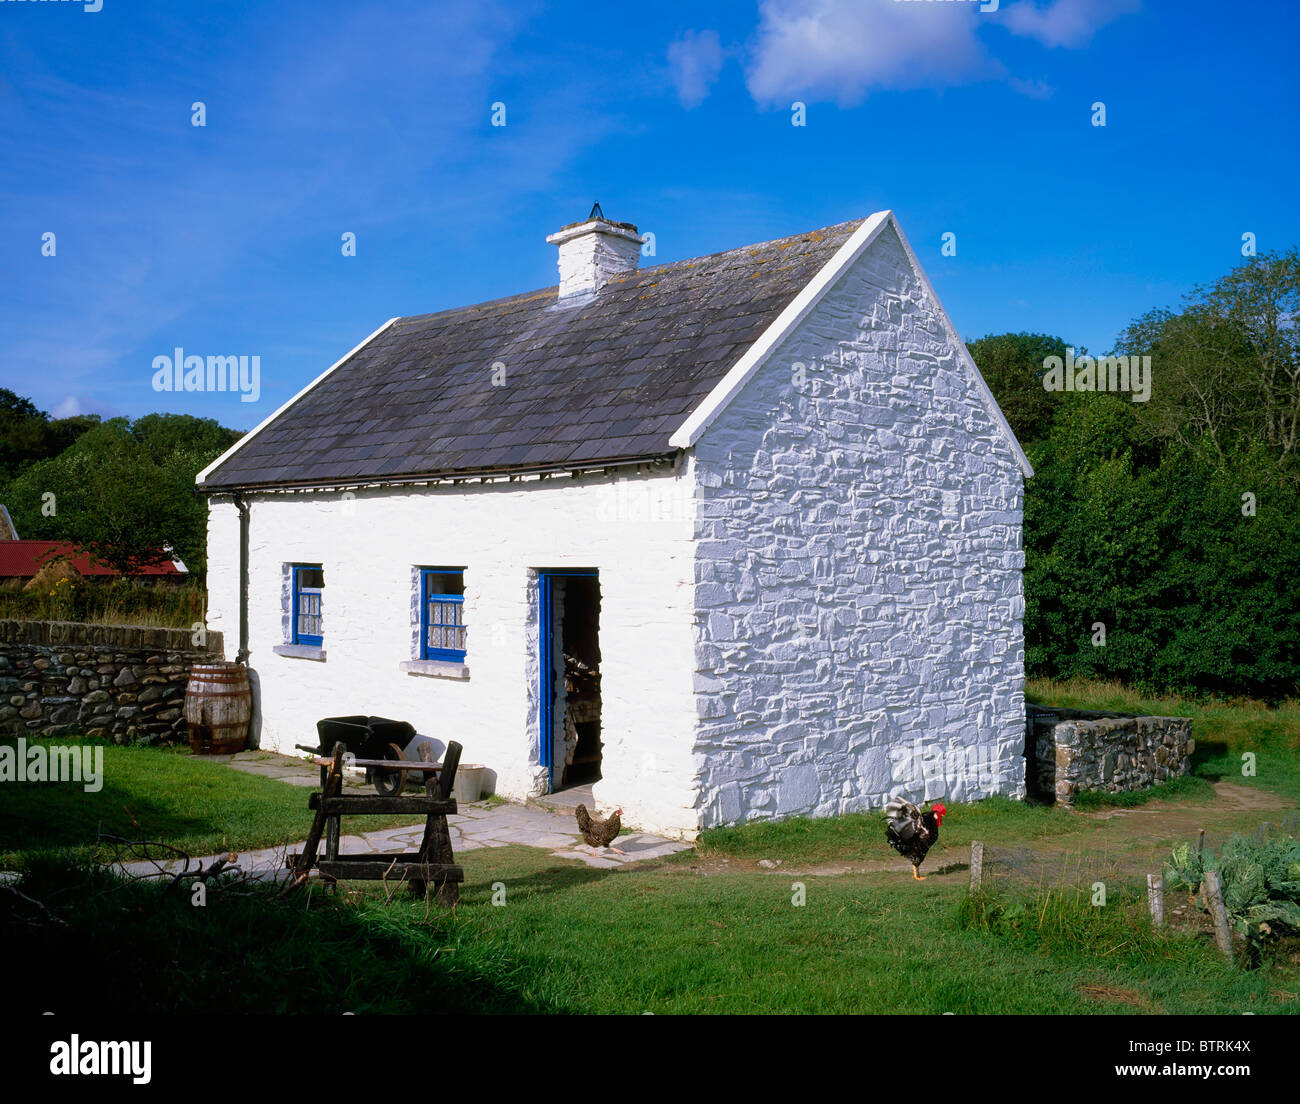 1e277a89d1fed Muckross Traditional Farms, Killarney National Park,Co Kerry, Ireland;  Traditional Farm Depicting Life In The Early 20Th Century